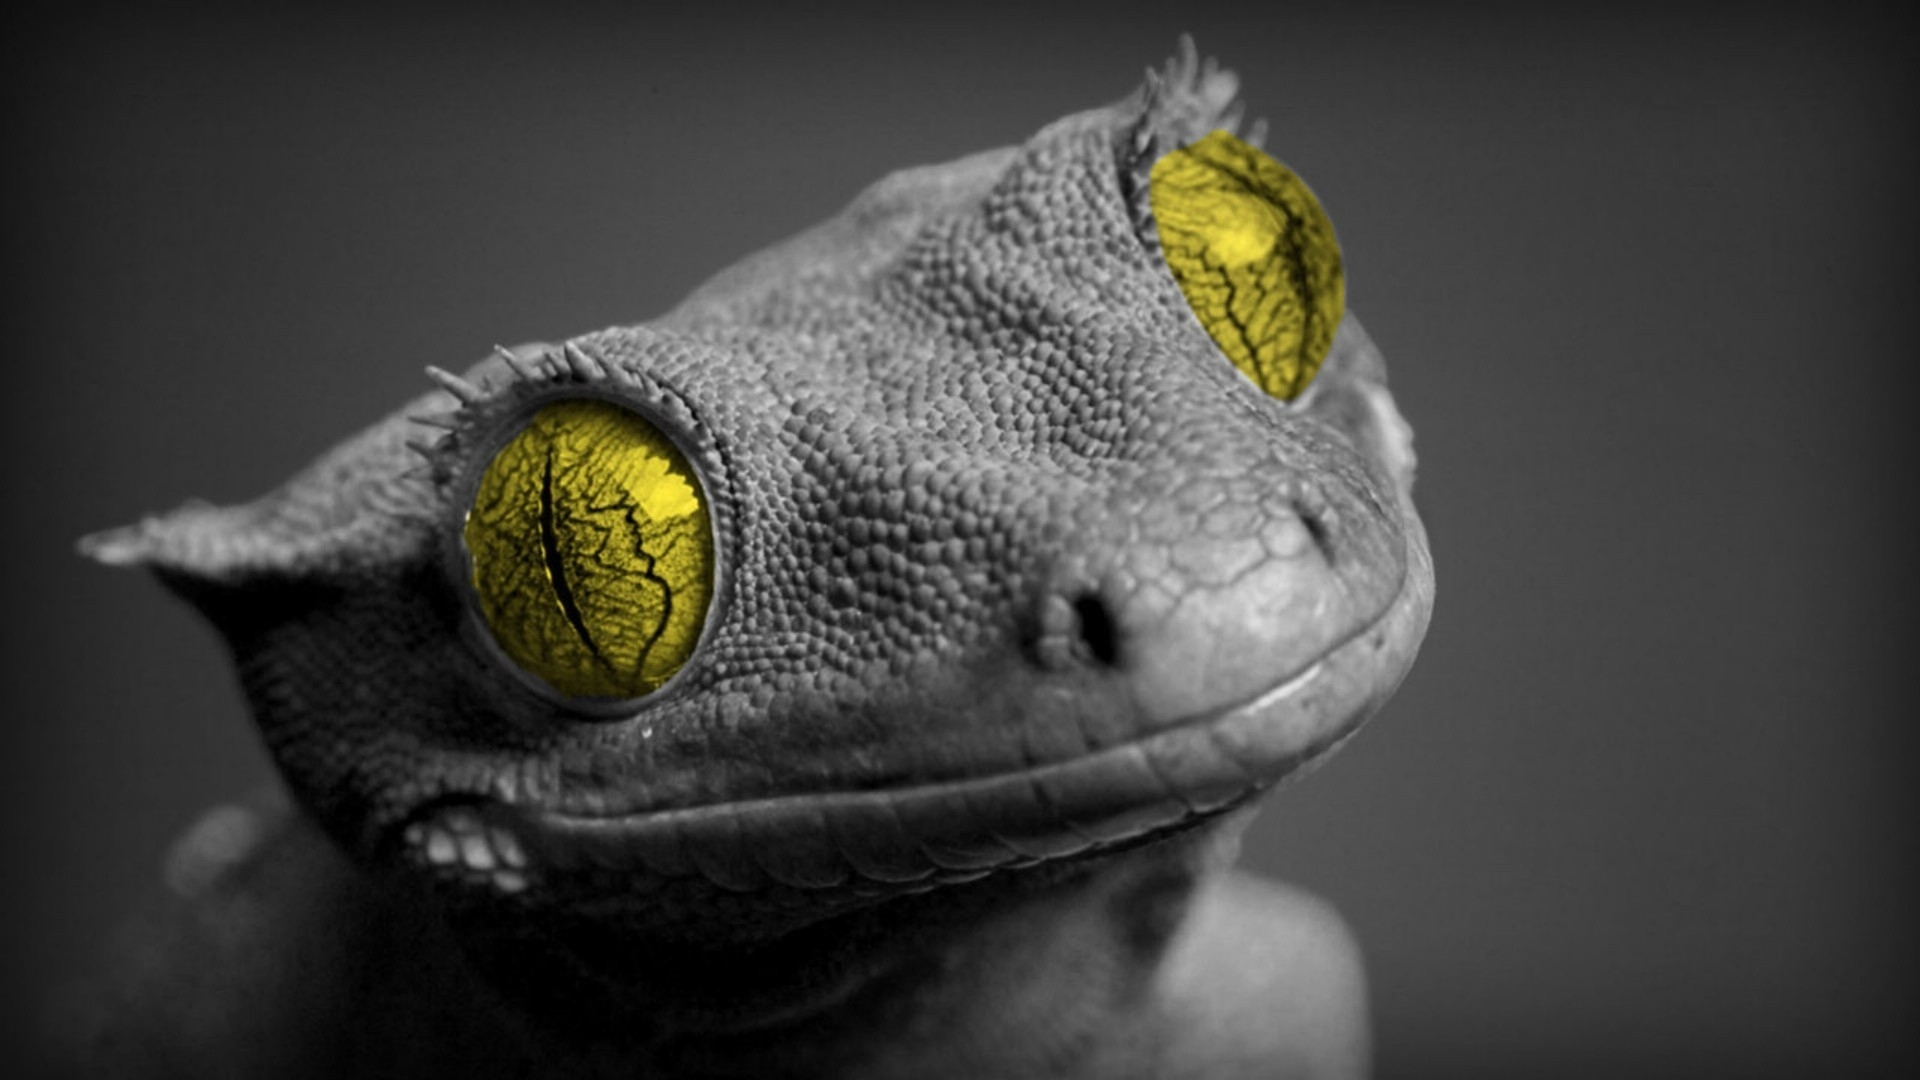 68 gecko hd wallpapers hintergr nde wallpaper abyss for Immagini desktop 1366x768